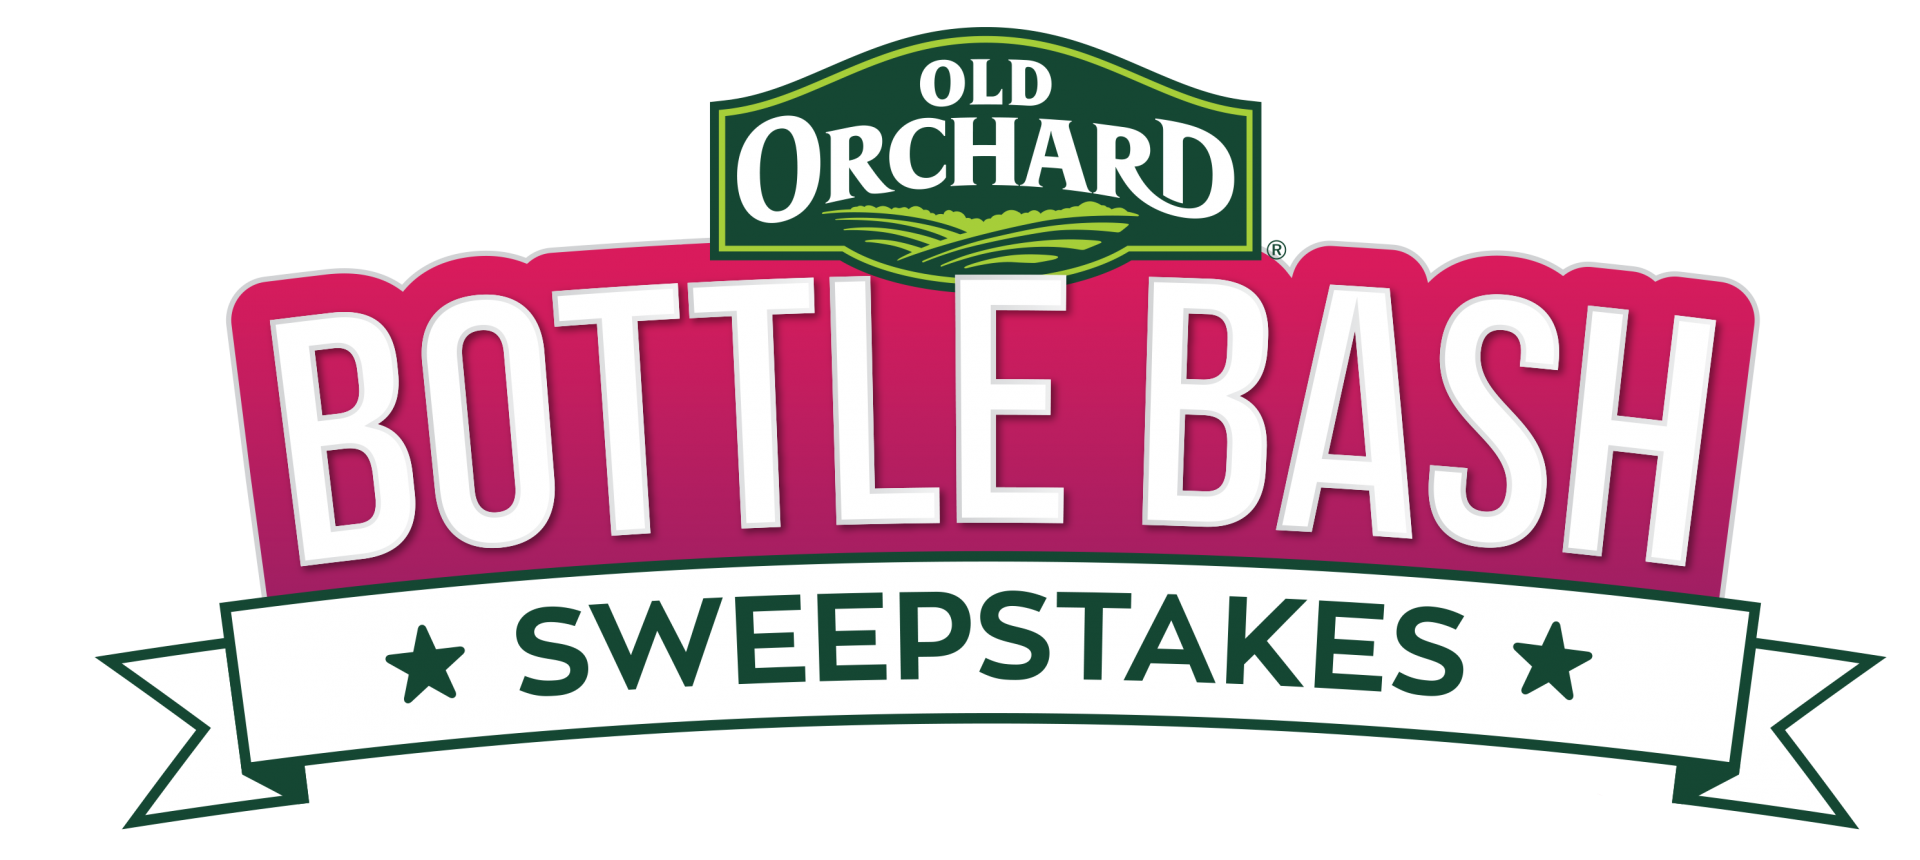 Bottle Bash Sweepstakes Old Orchard Brands